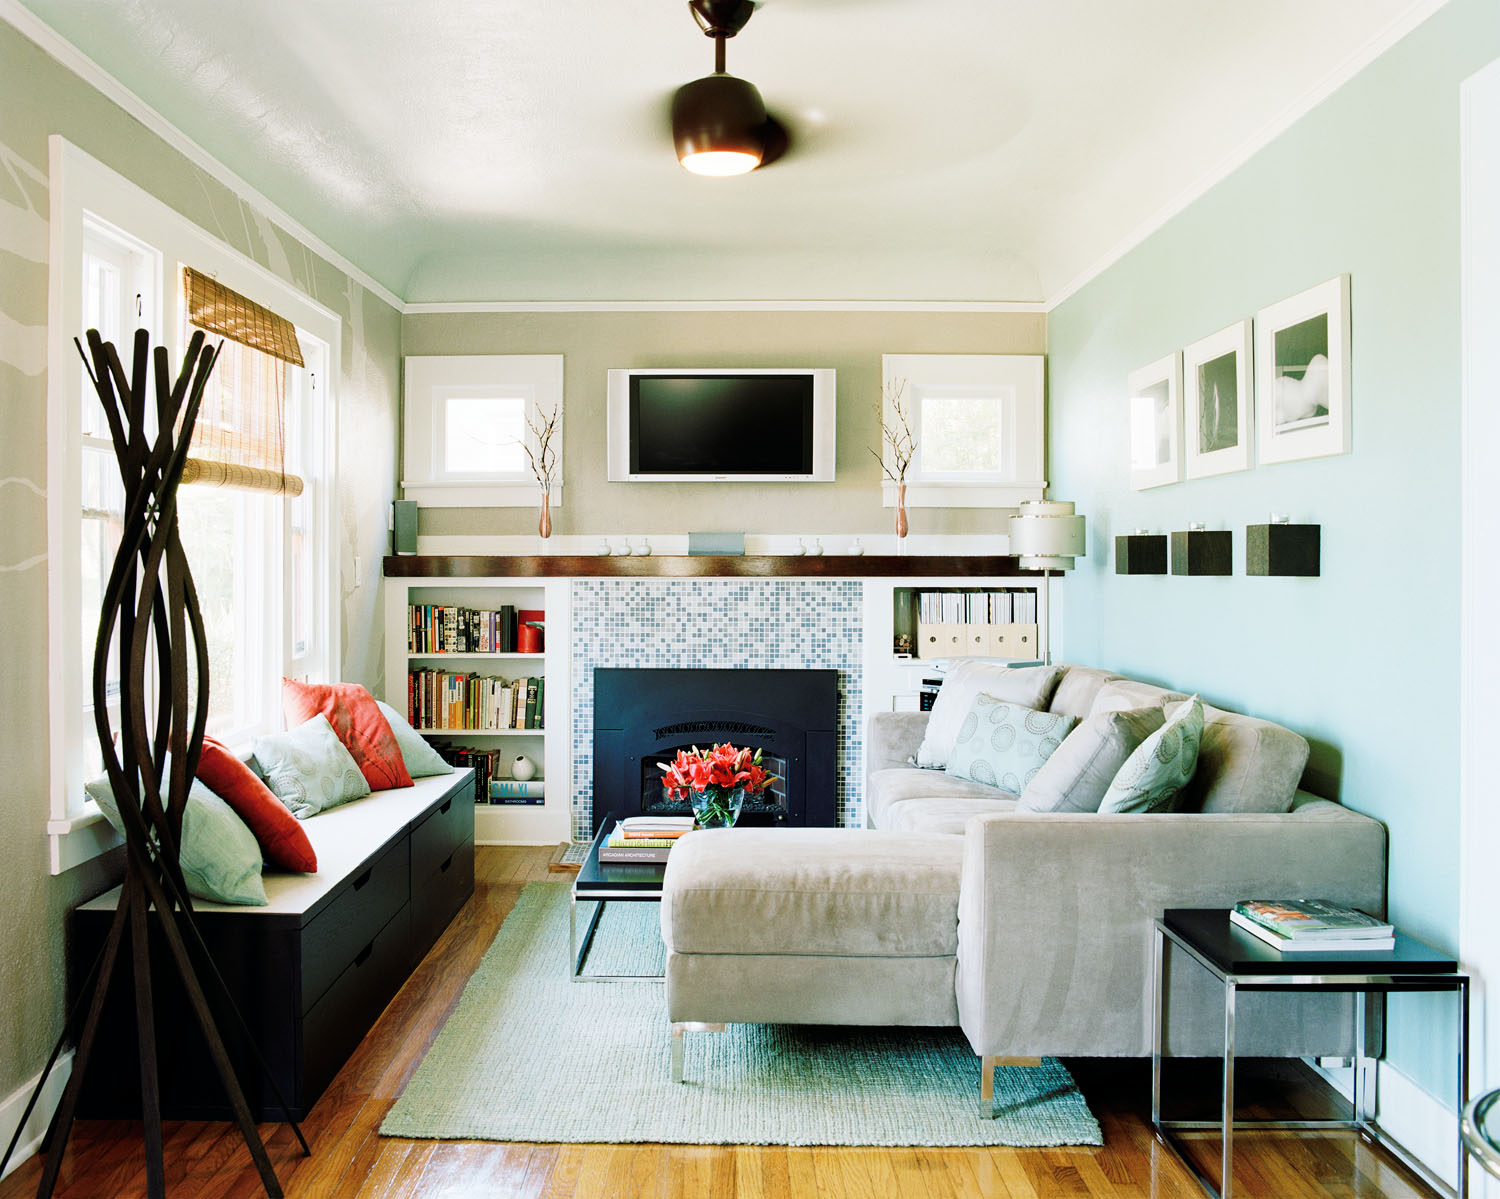 Stylish Living in 700 Square Feet Sunset Magazine